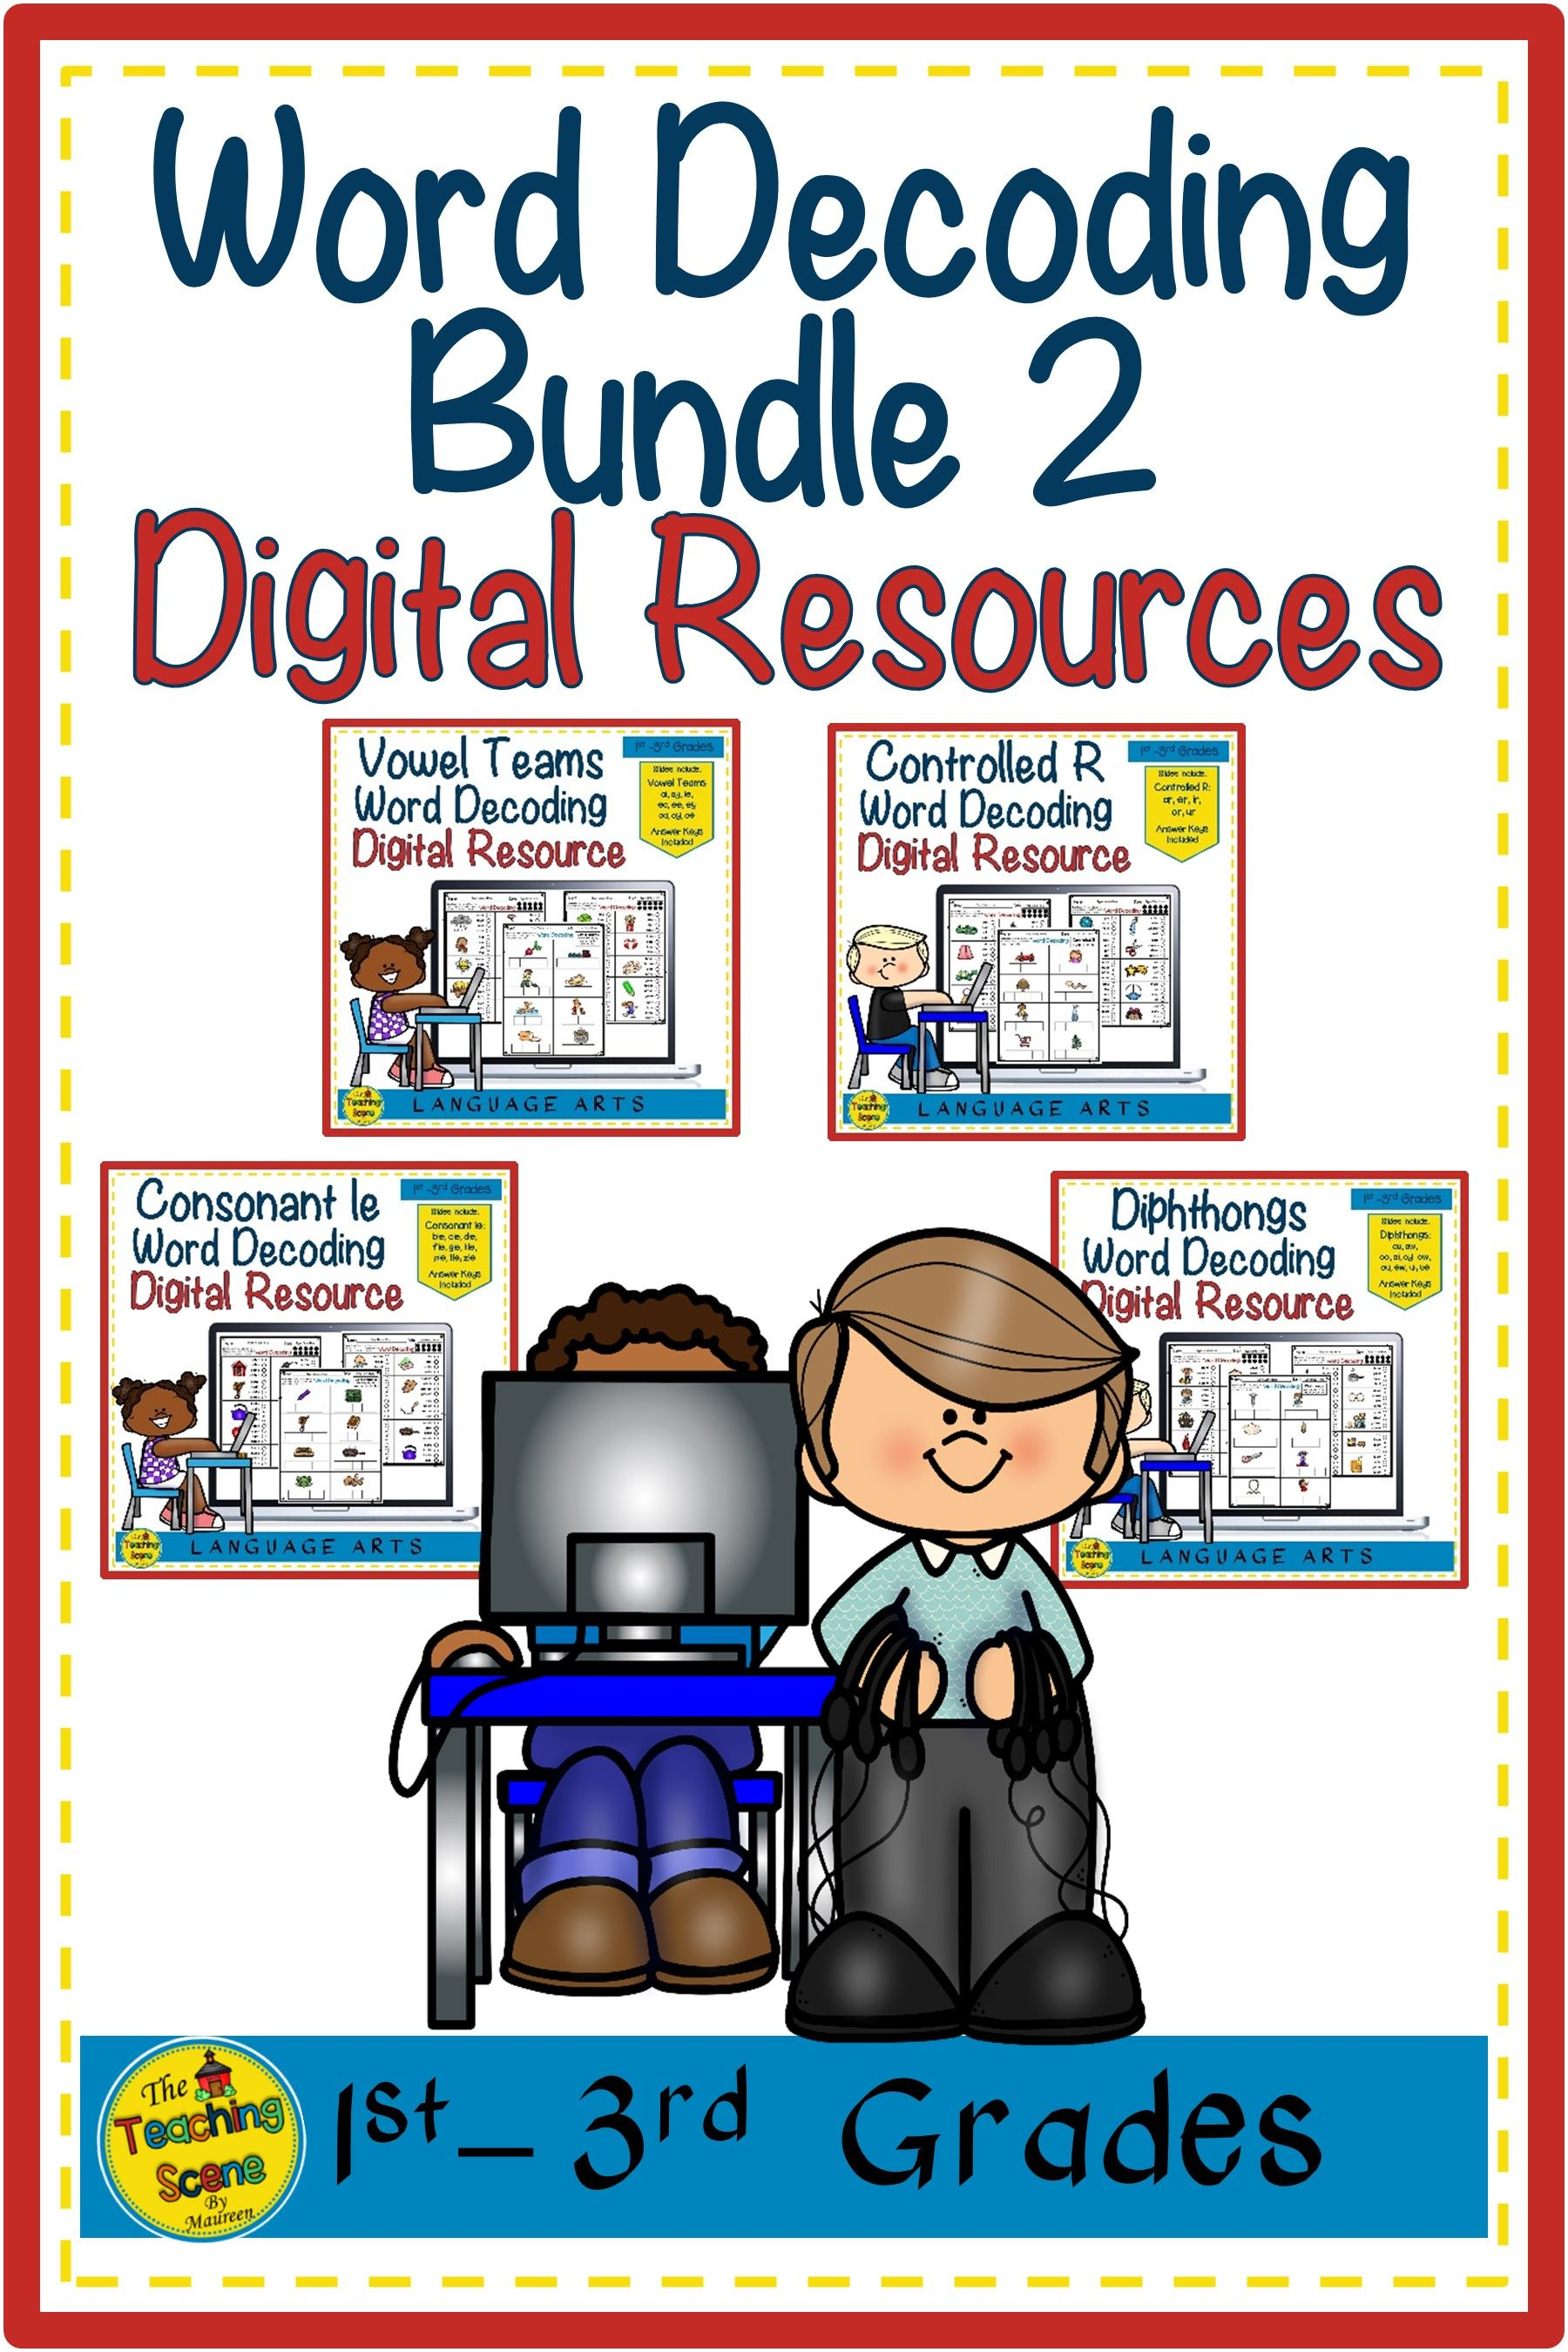 Digital Slides Word Decoding Bundle 2 Worksheets